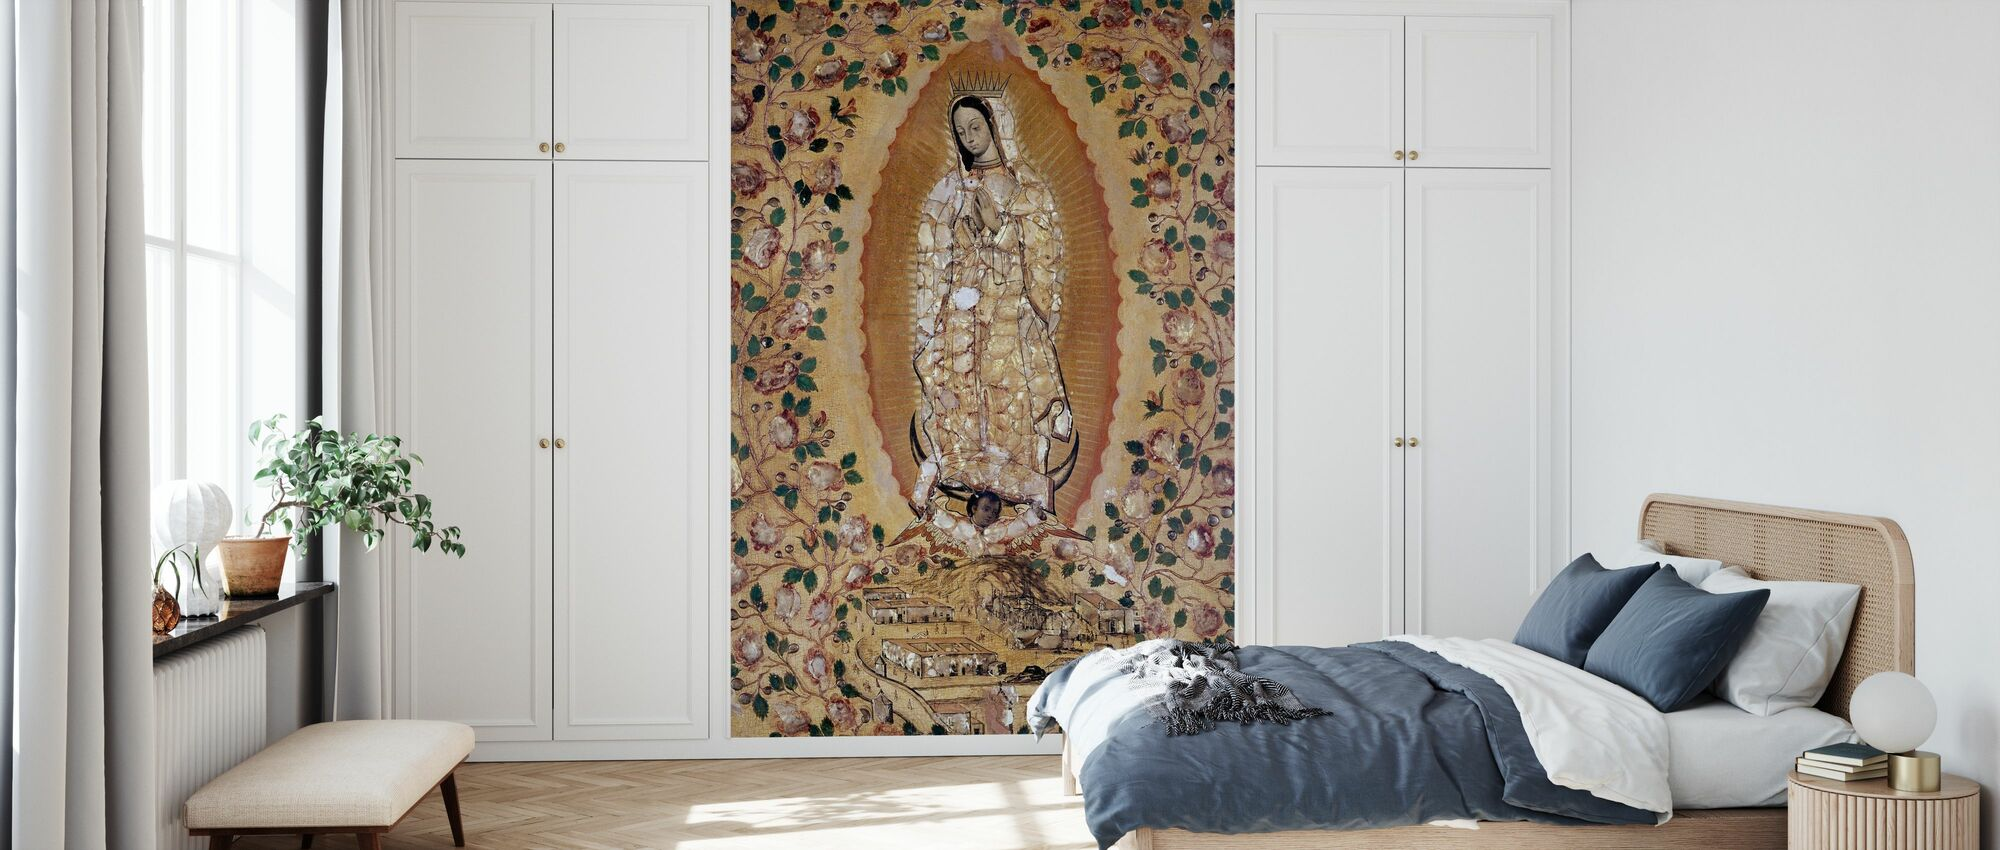 Virgin de Guadalupe - Gonzales Miguel - Wallpaper - Bedroom